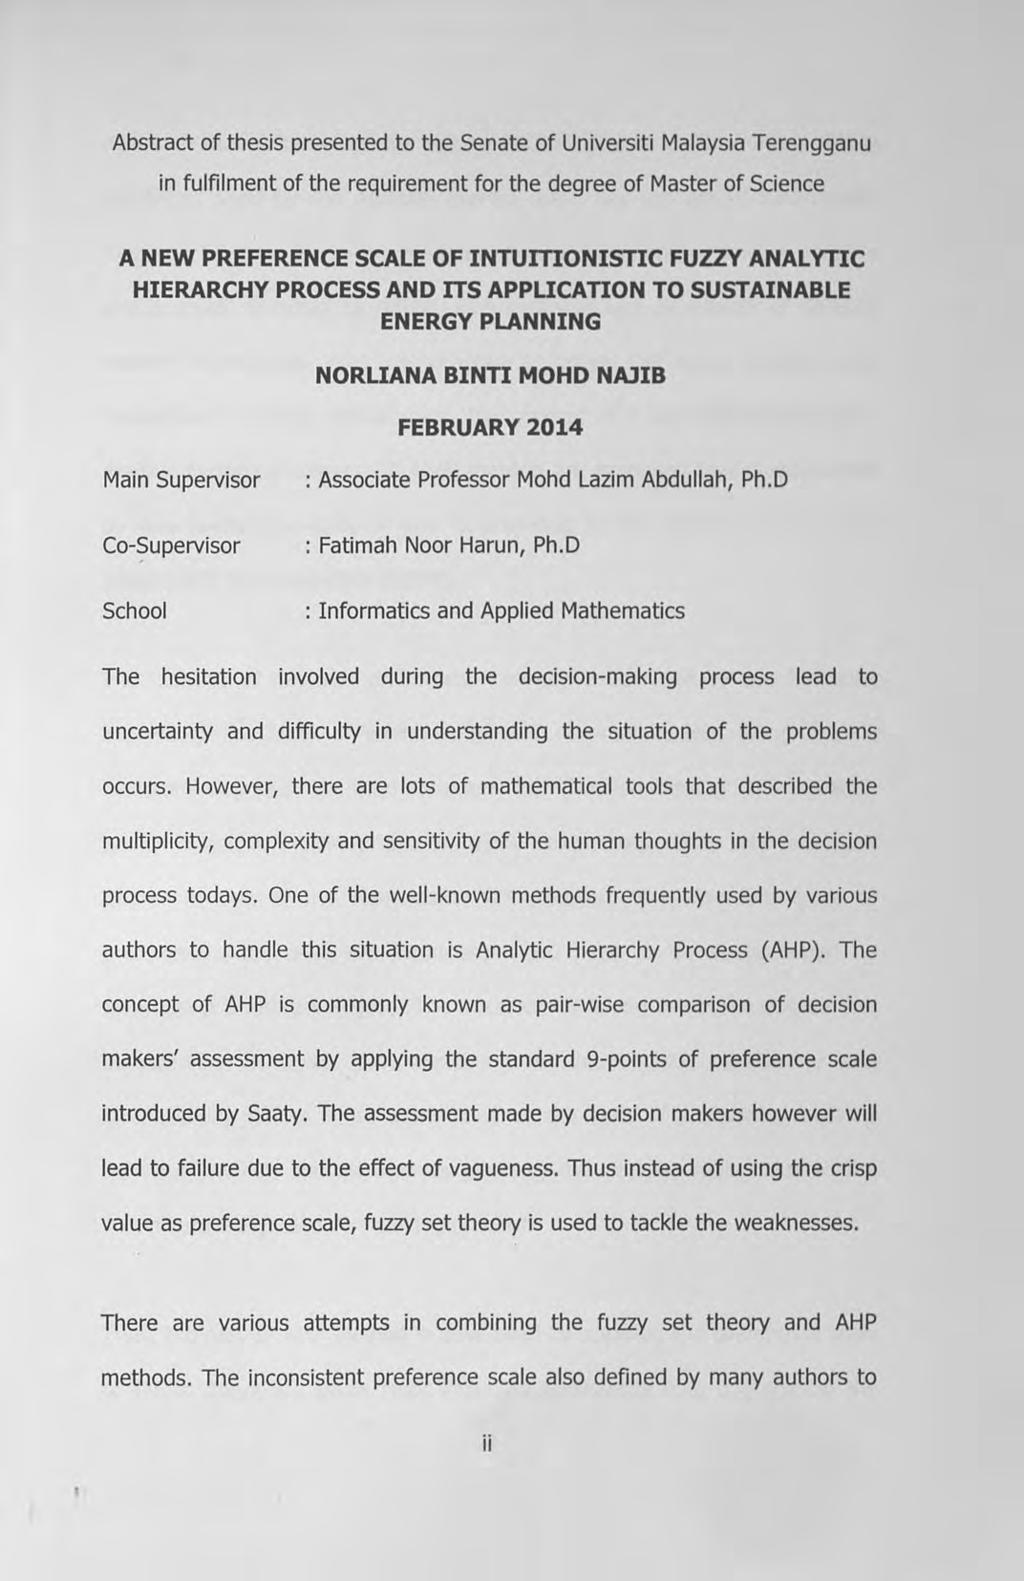 Abstract of thesis presented to the Senate of Universiti Malaysia Terengganu in fulfilment of the requirement for the degree of Master of Science A NEW PREFERENCE SCALE OF INTUIDONISTIC FUZZY